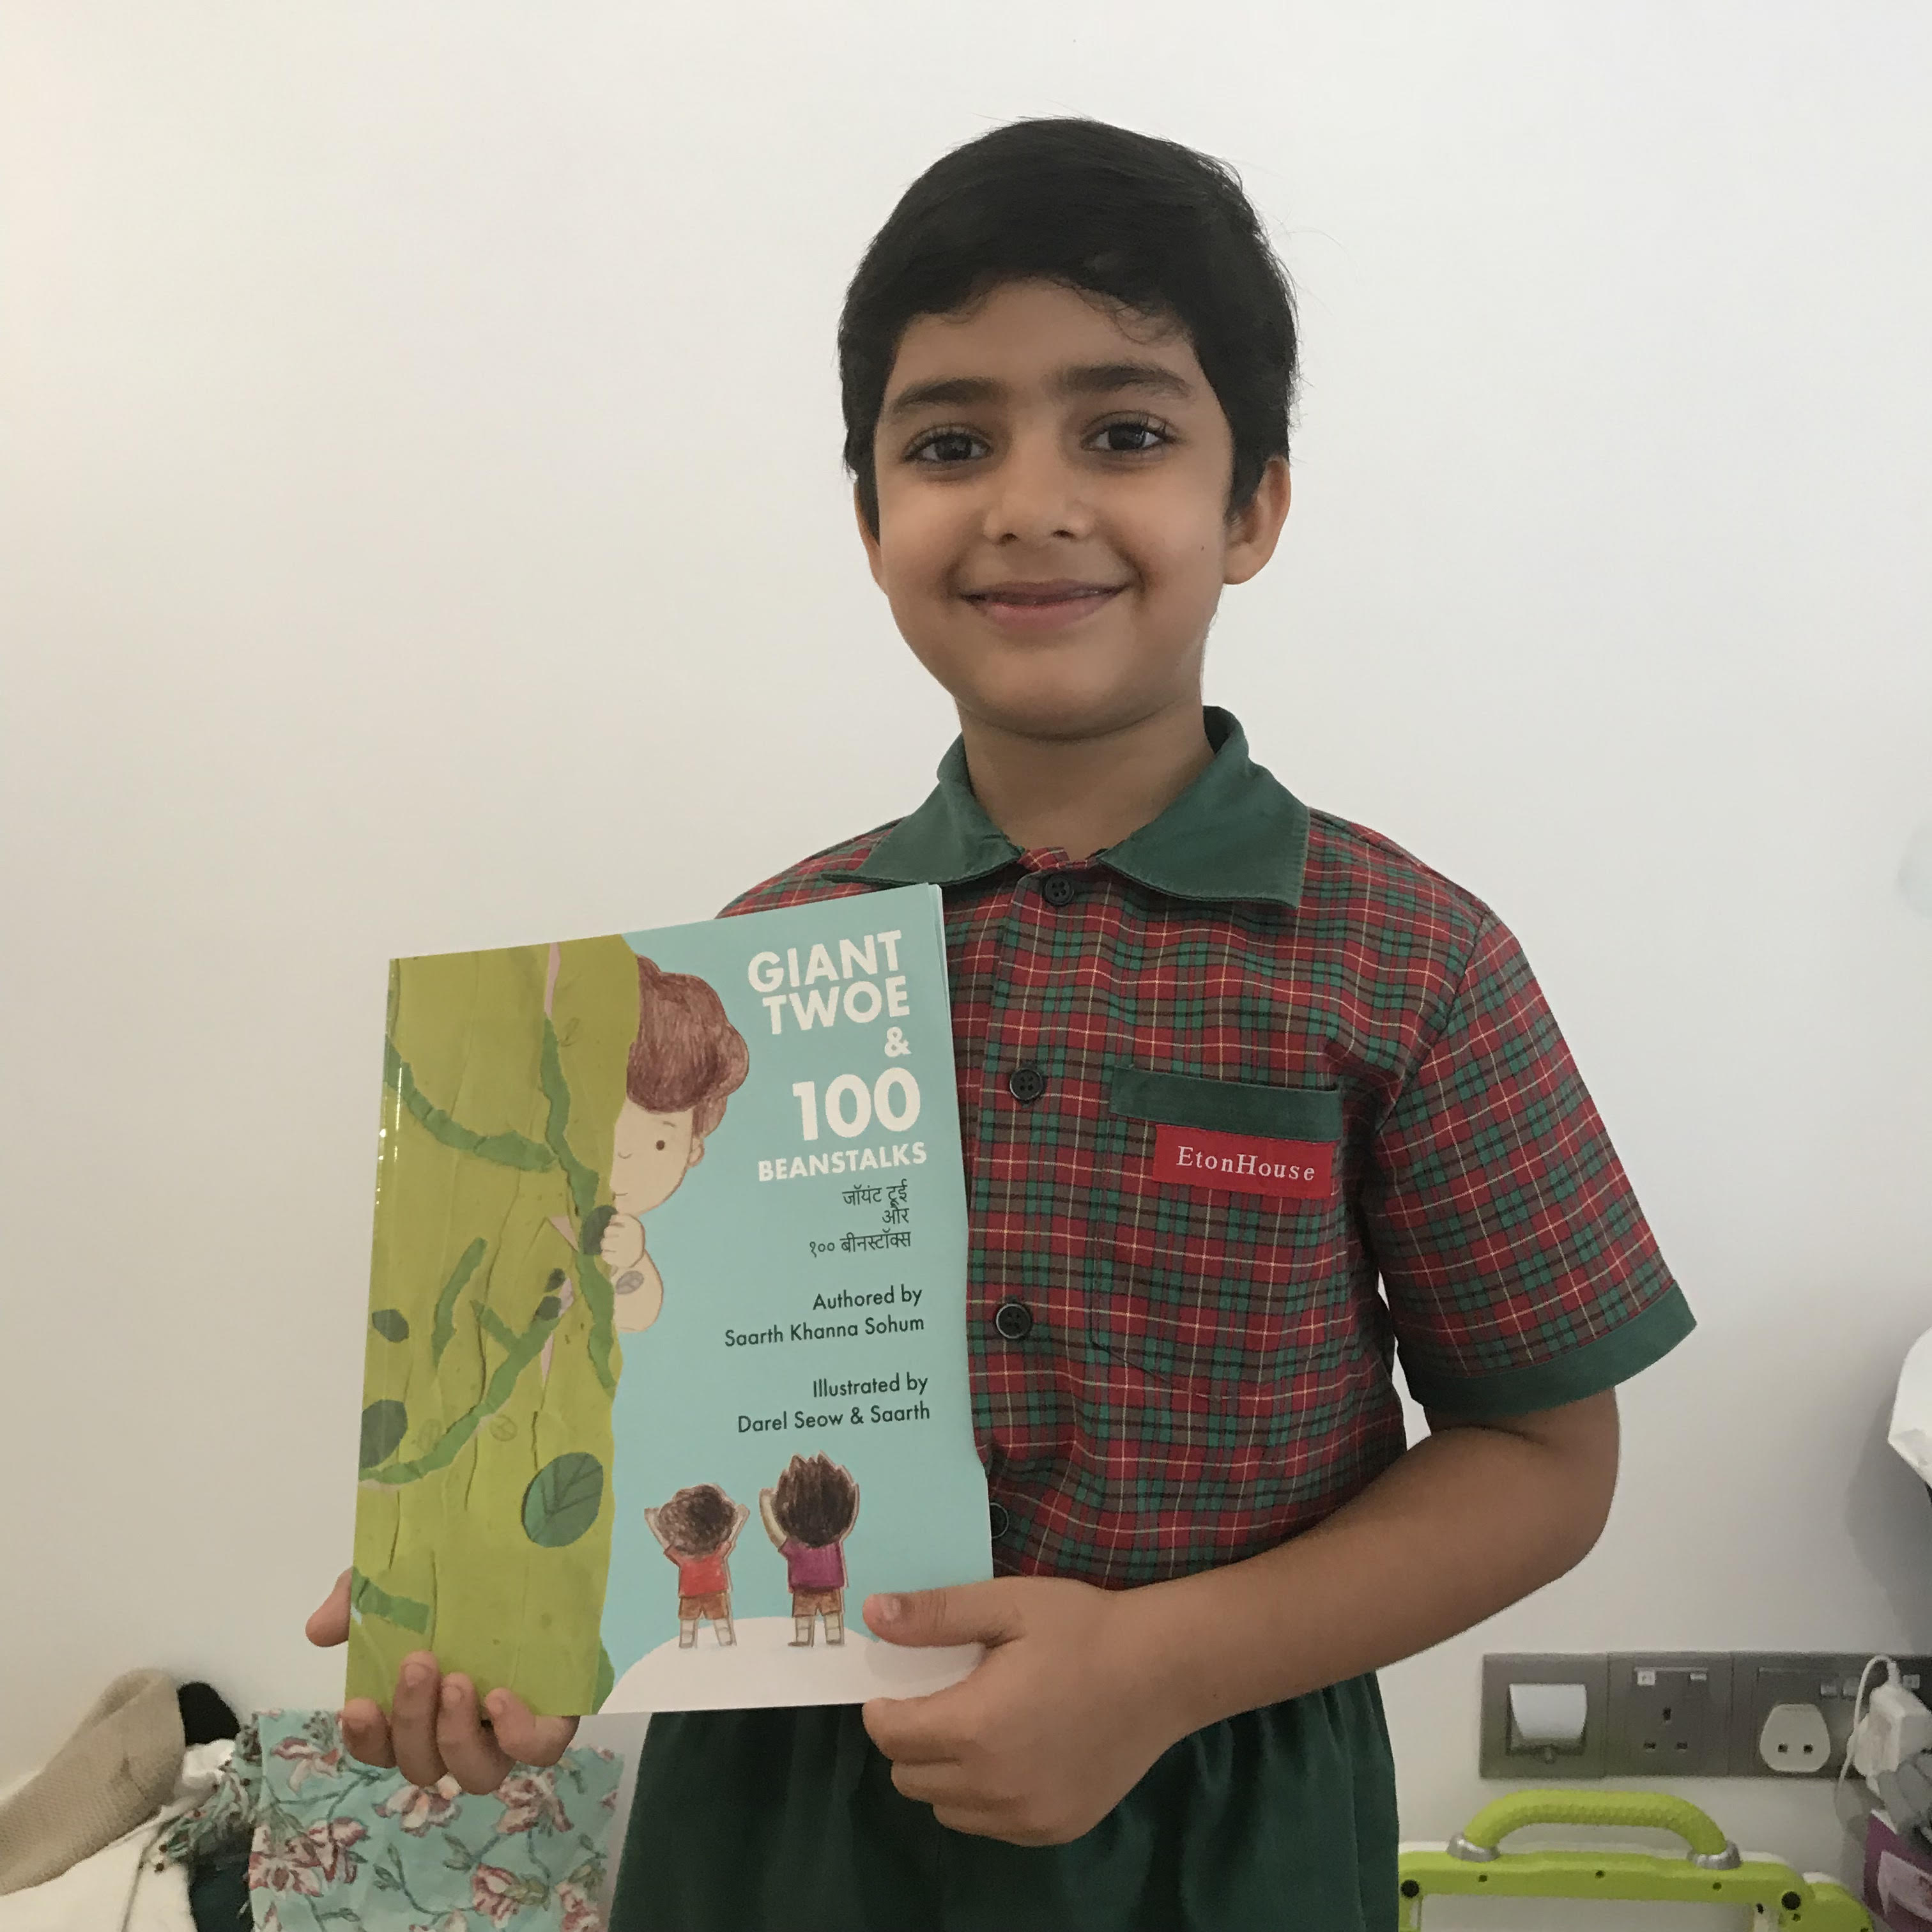 Saarth Khanna Sohum with the book he has written, 'Giant Twoe and 100 Beanstalks'.